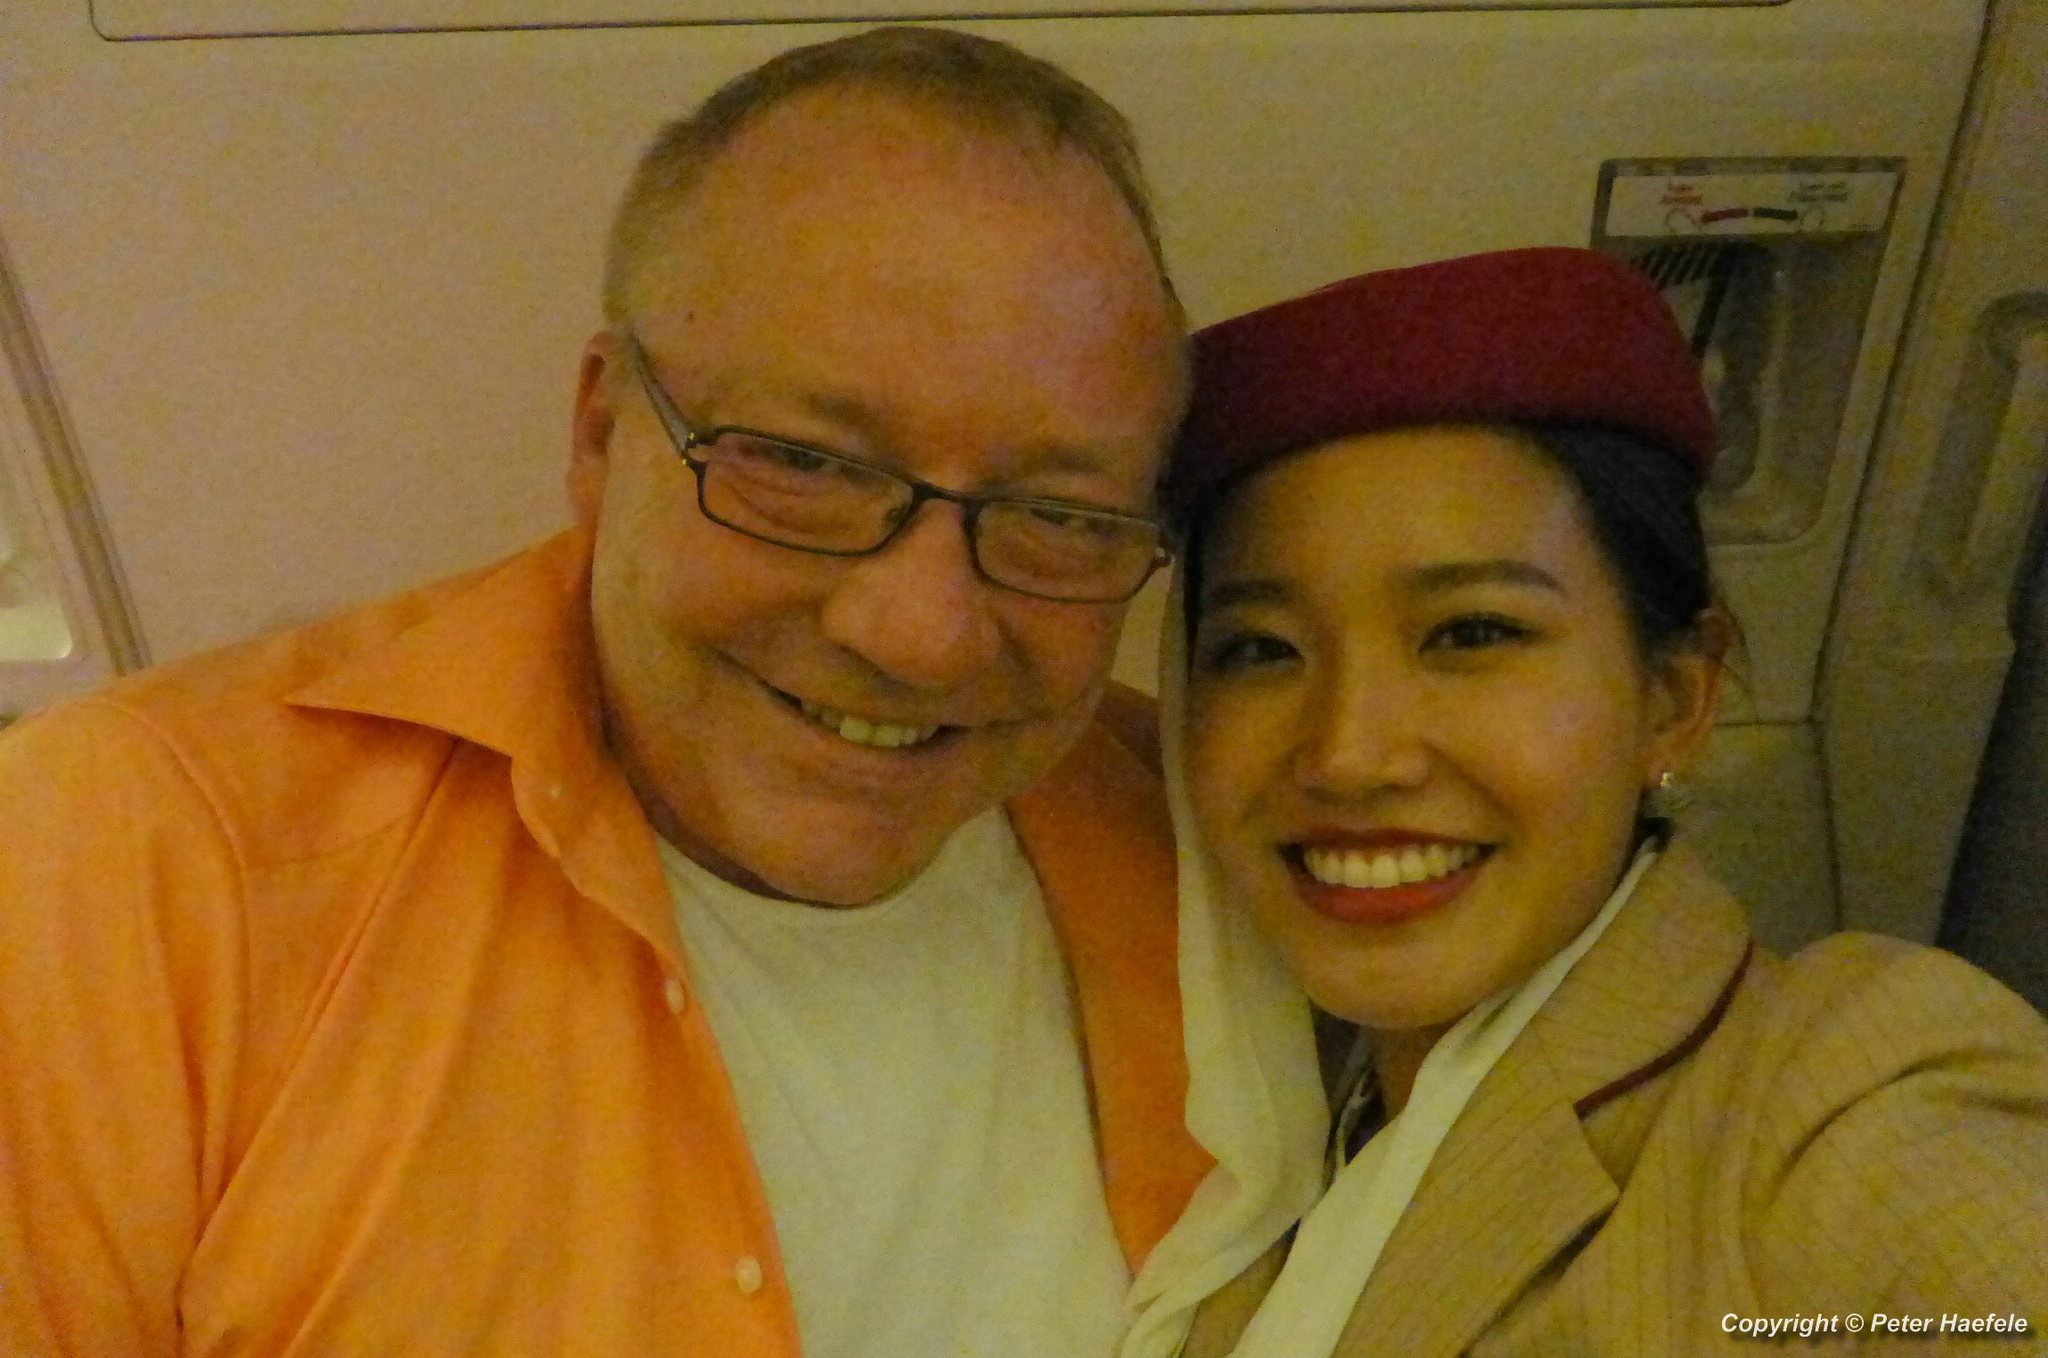 Mit der netten Emirates Stewardess in Dubai - With the nice Emirates stewardess in Dubai